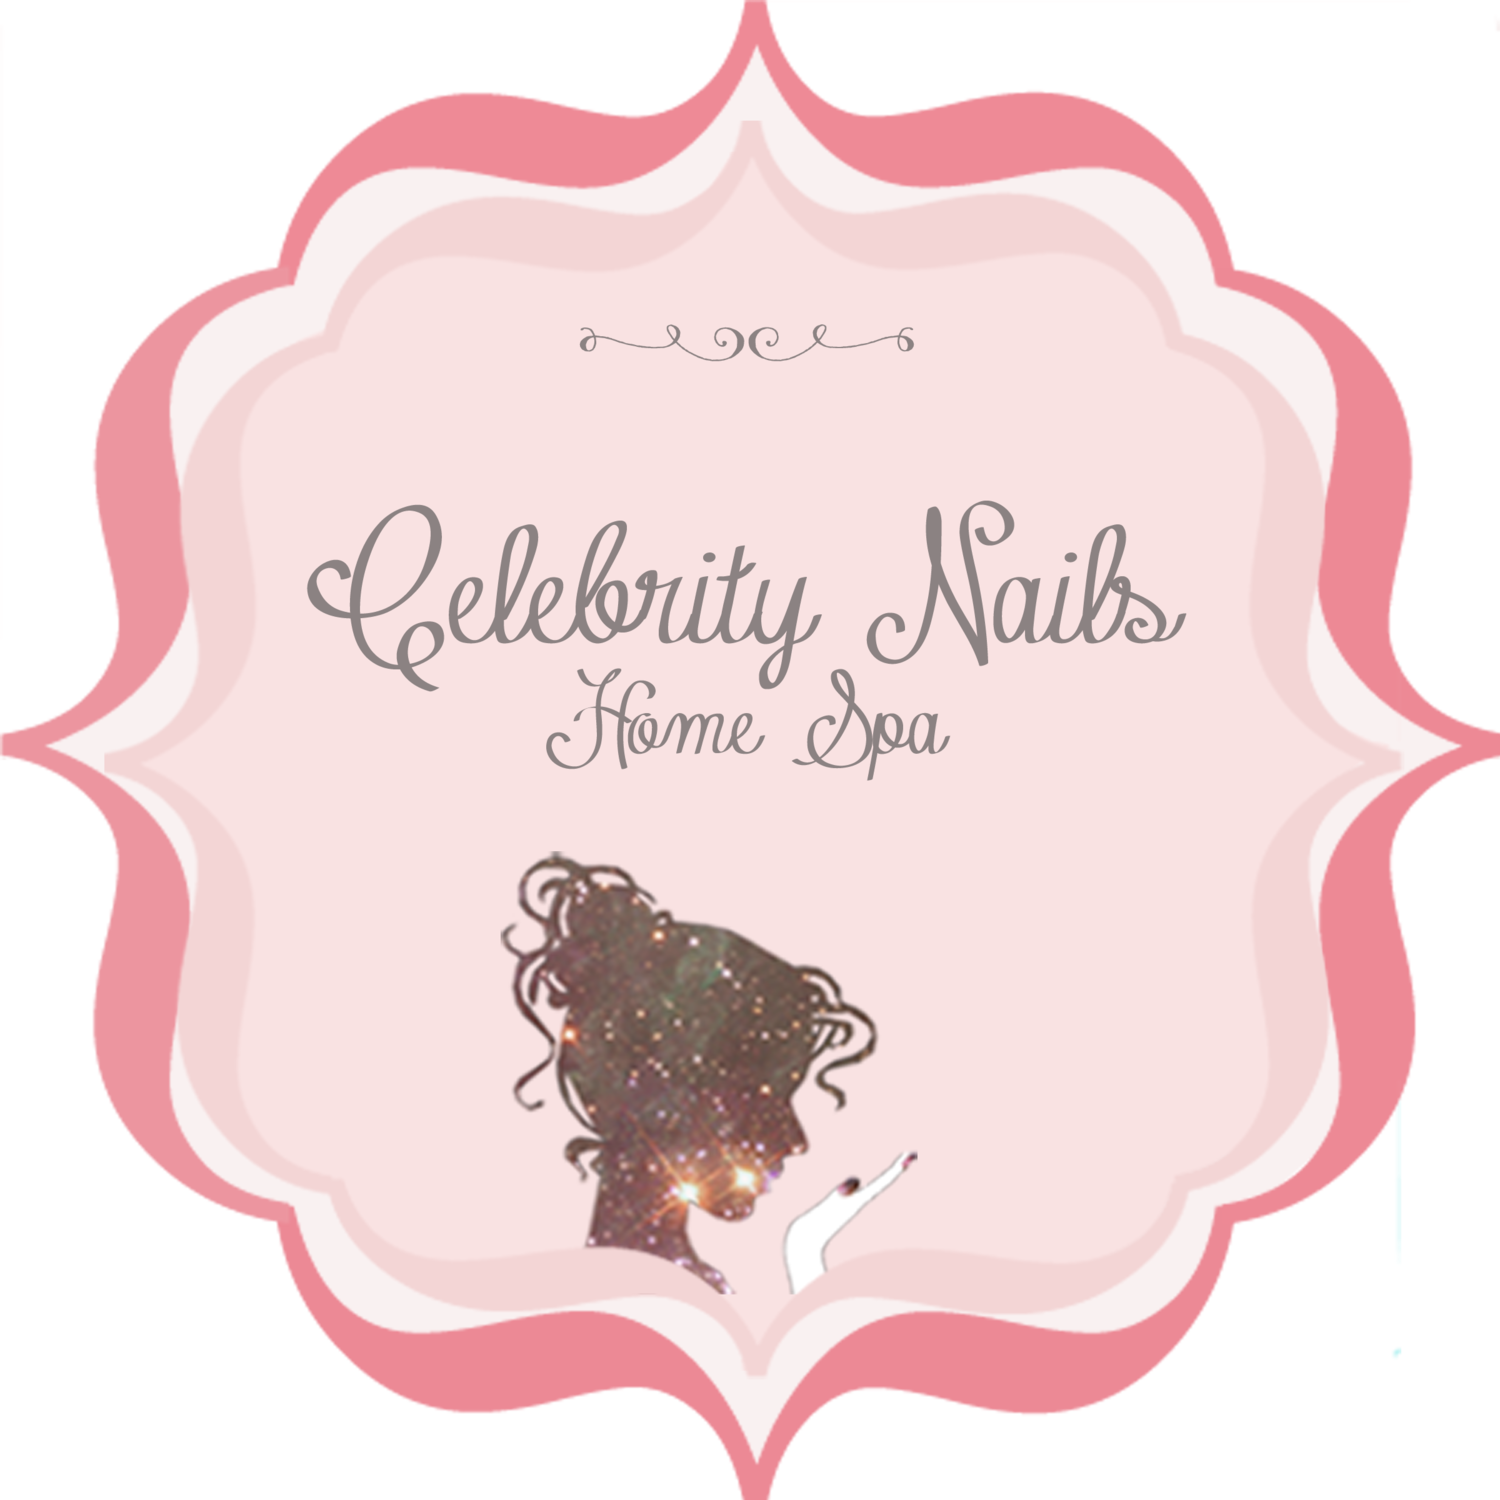 Celebrity Nails Home Spa